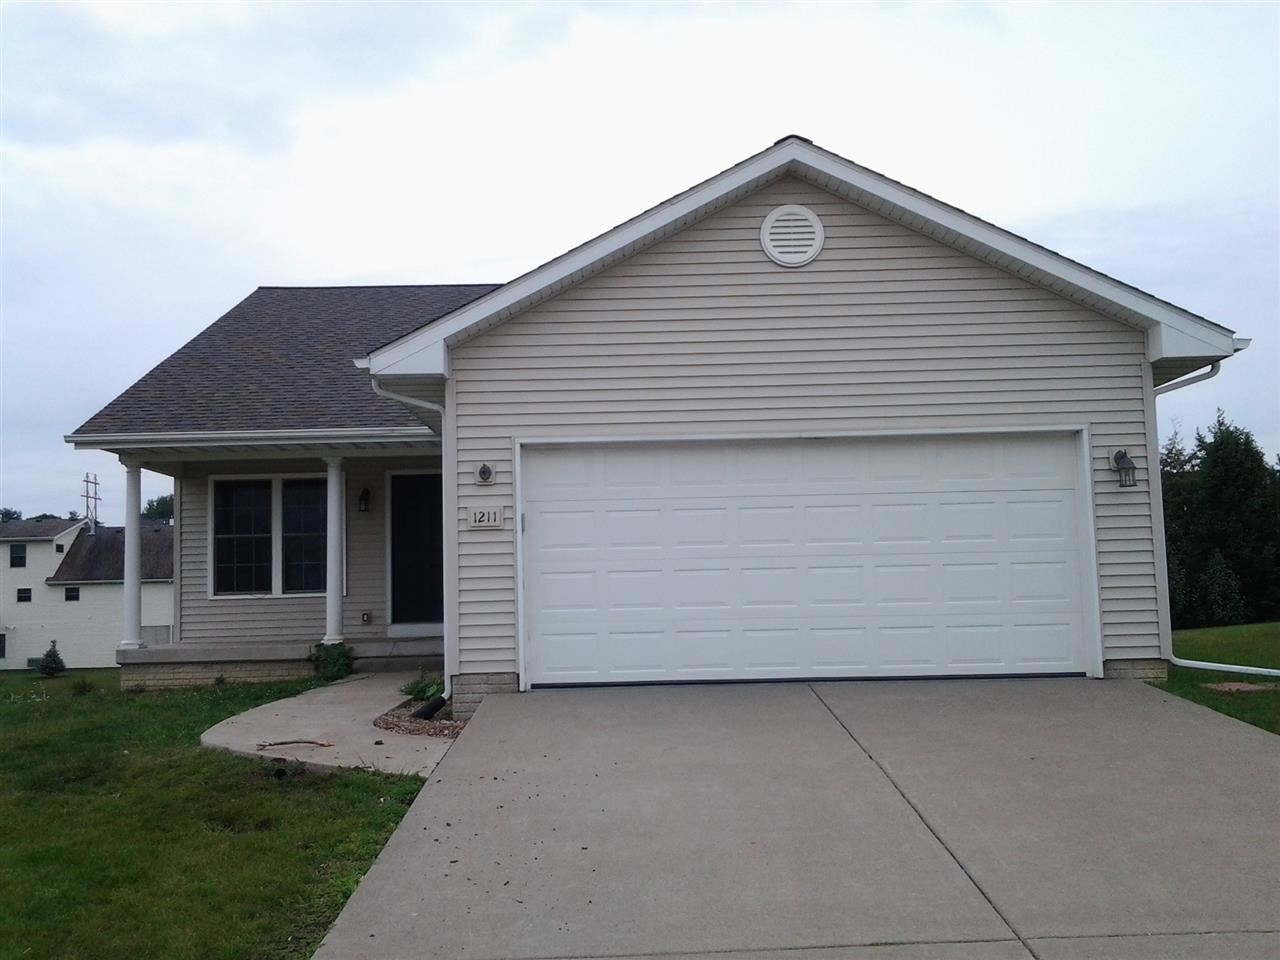 Rental Homes for Rent, ListingId:29402852, location: 1211 W 61ST Davenport 52806